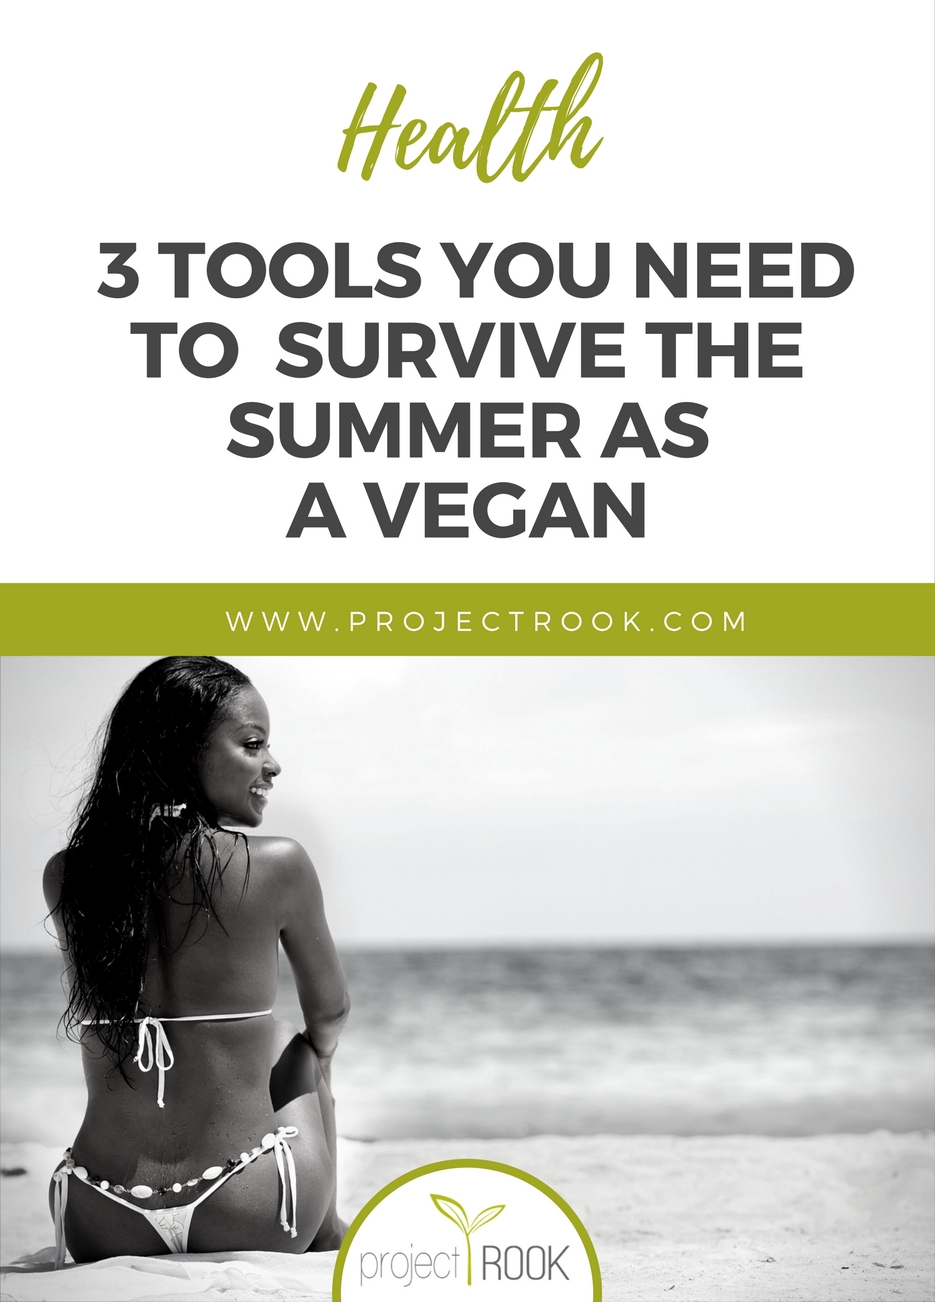 project-rook-survive-summer-as-vegan.jpg